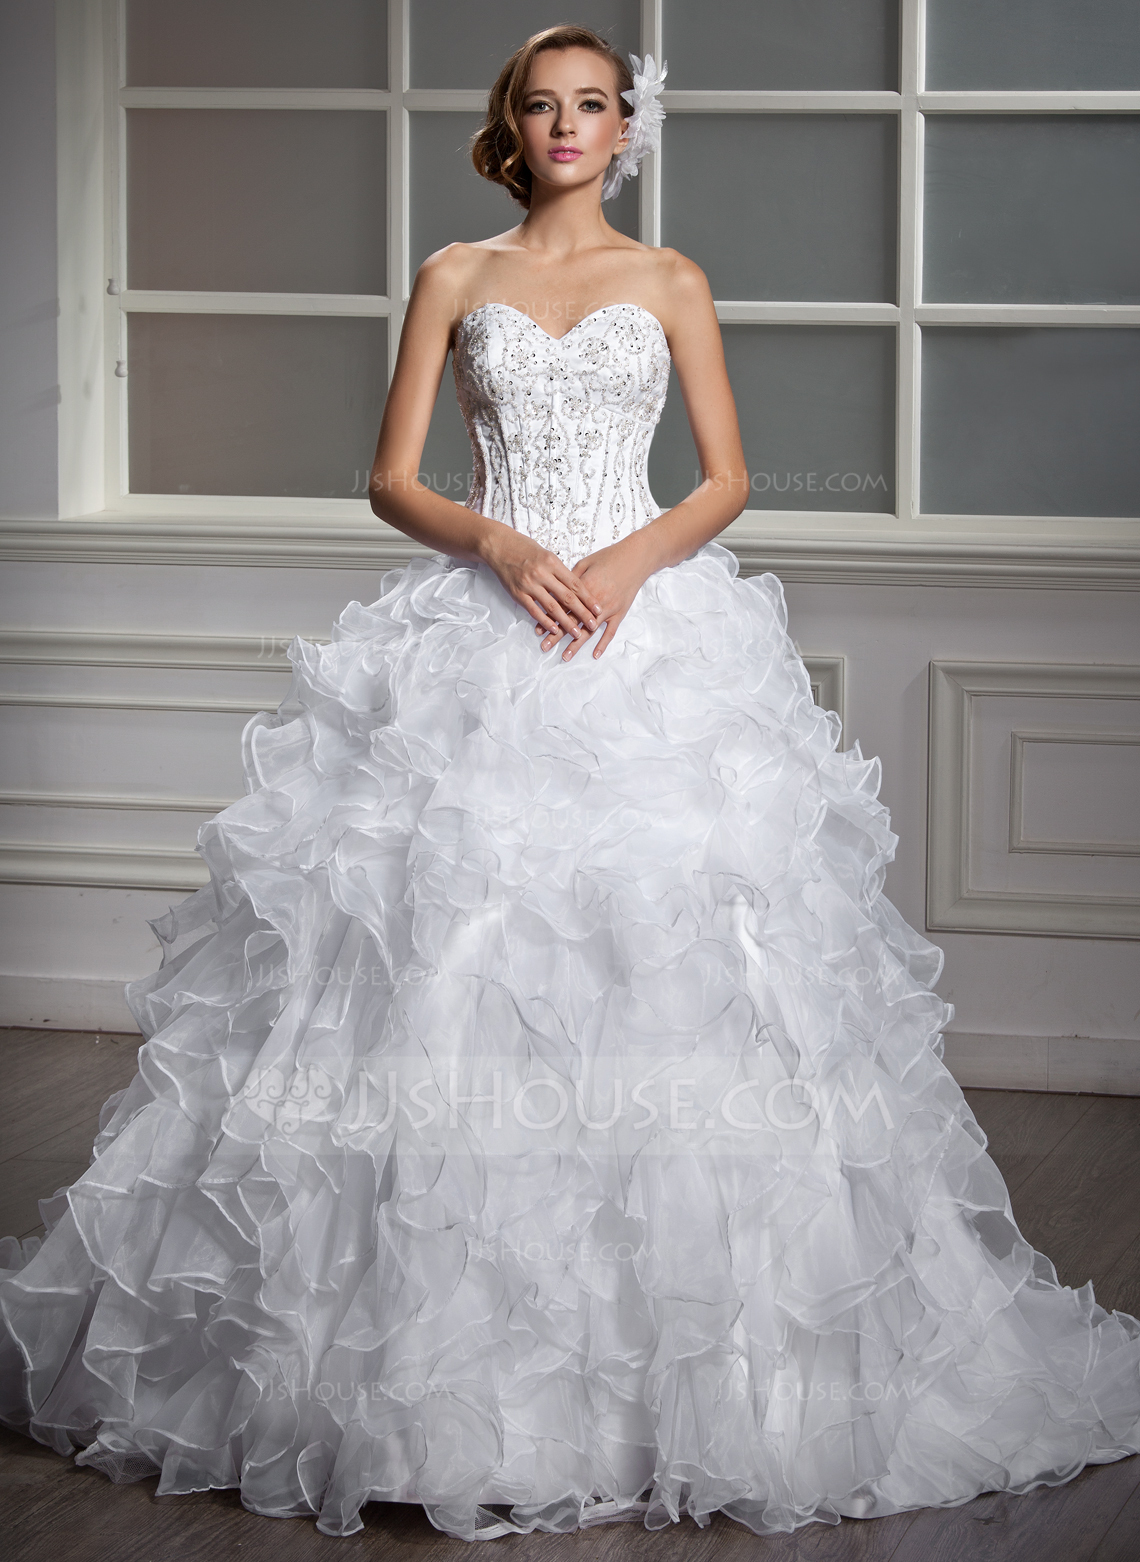 Ball Gown Sweetheart Court Train Satin Organza Wedding Dress With Beading Sequins Cascading Ruffles g jjs house wedding dresses Home Wedding Dresses Loading zoom